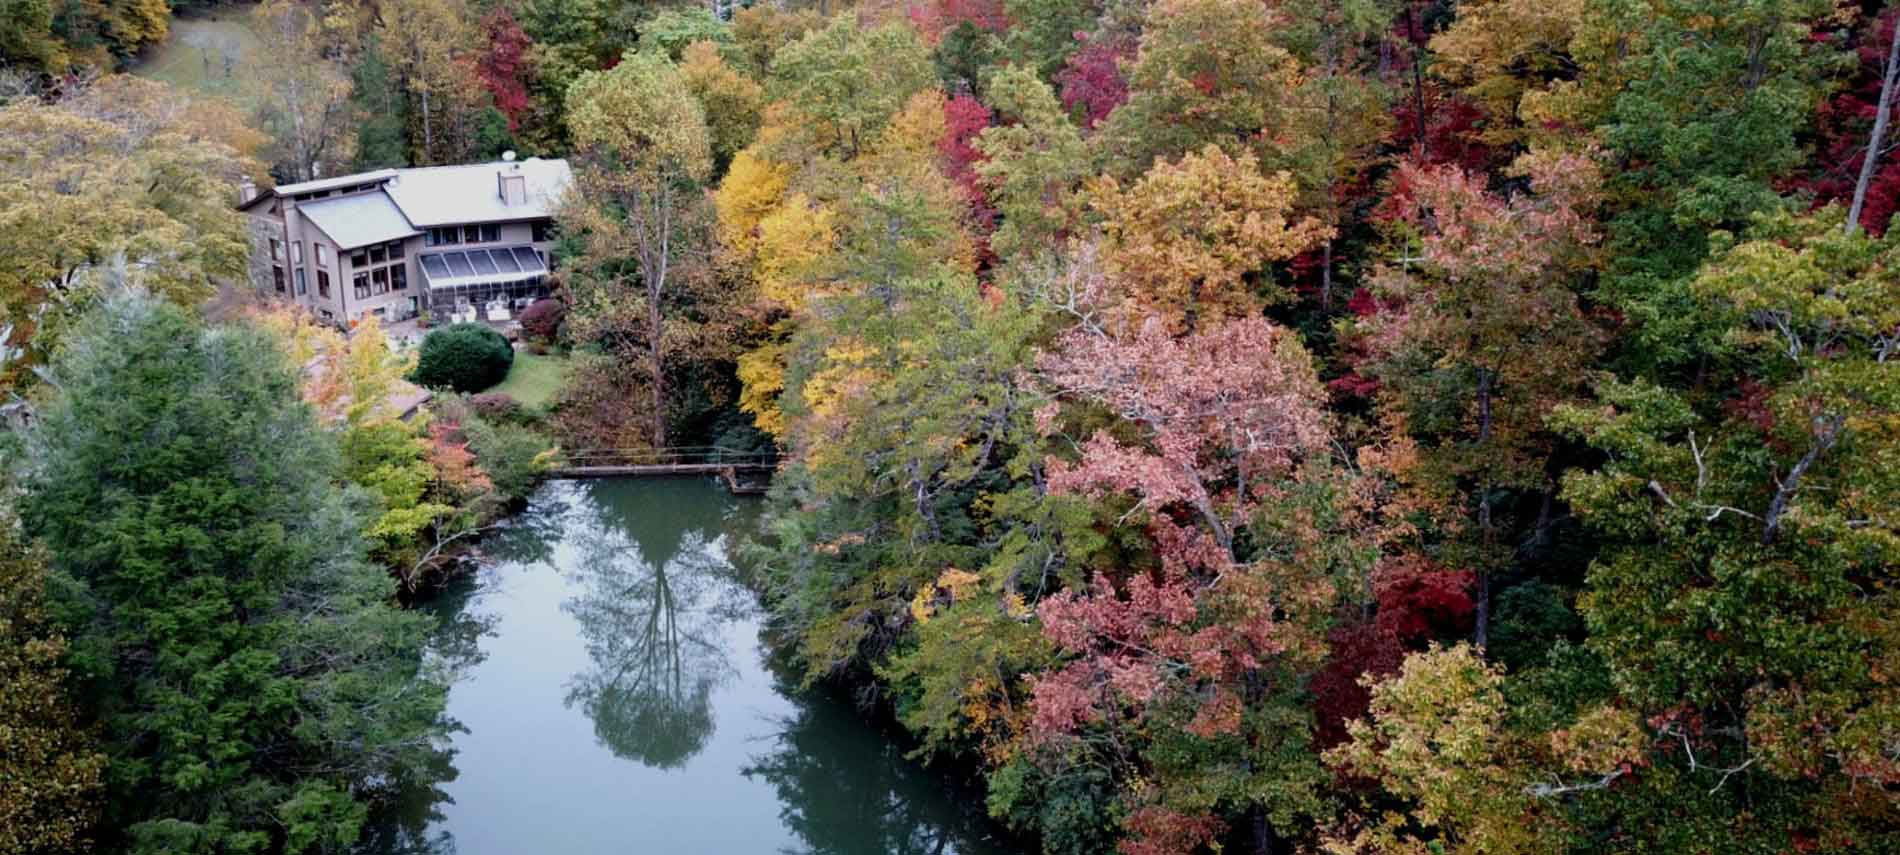 Aerial exterior view of the Inn of Mill Creek and propery including the autumn changes upon the leaves surrounding a pool of water.